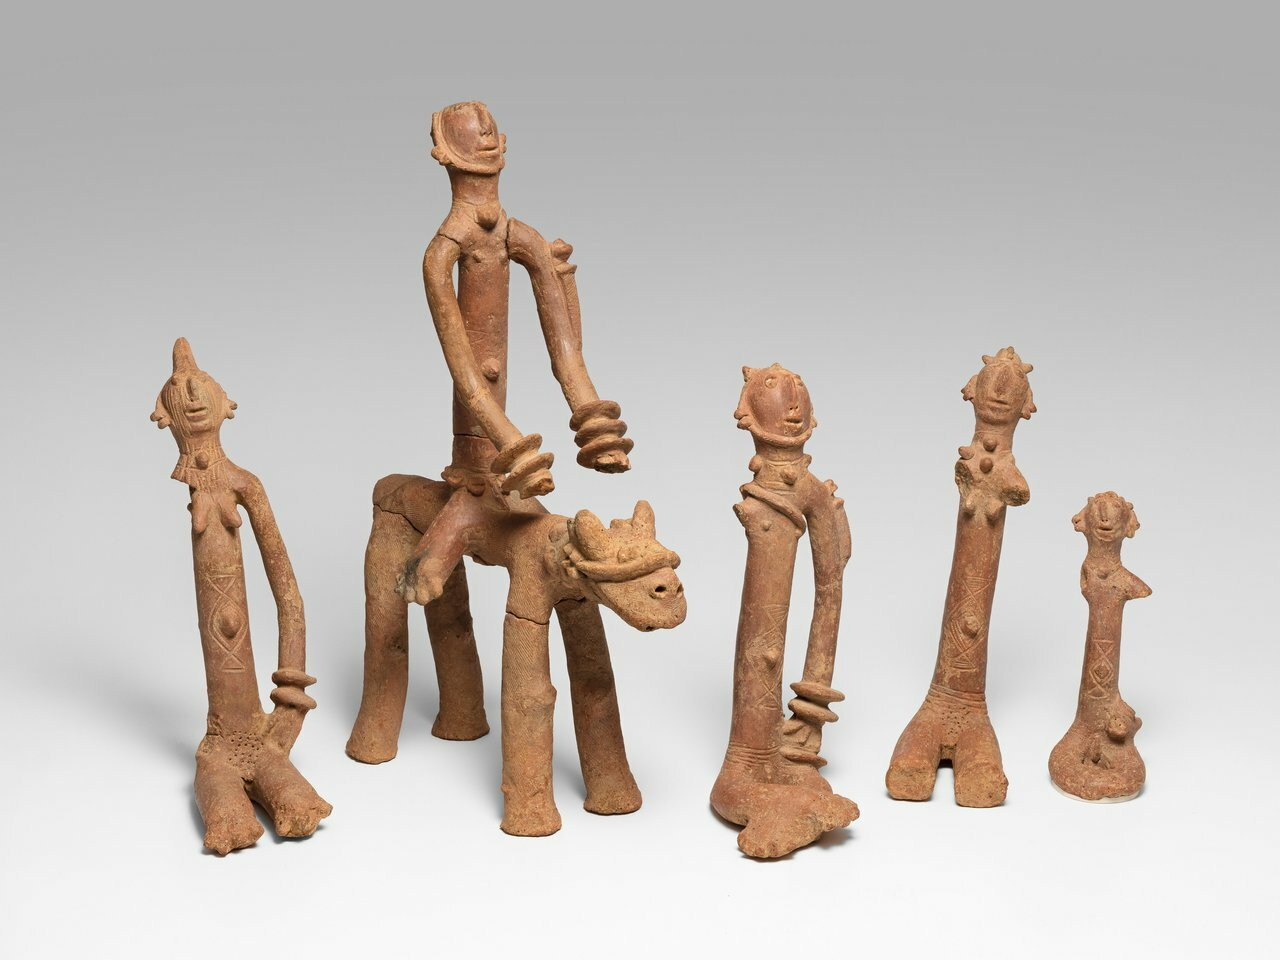 Art Institute of Chicago unveils key findings in African art thanks to medical technology